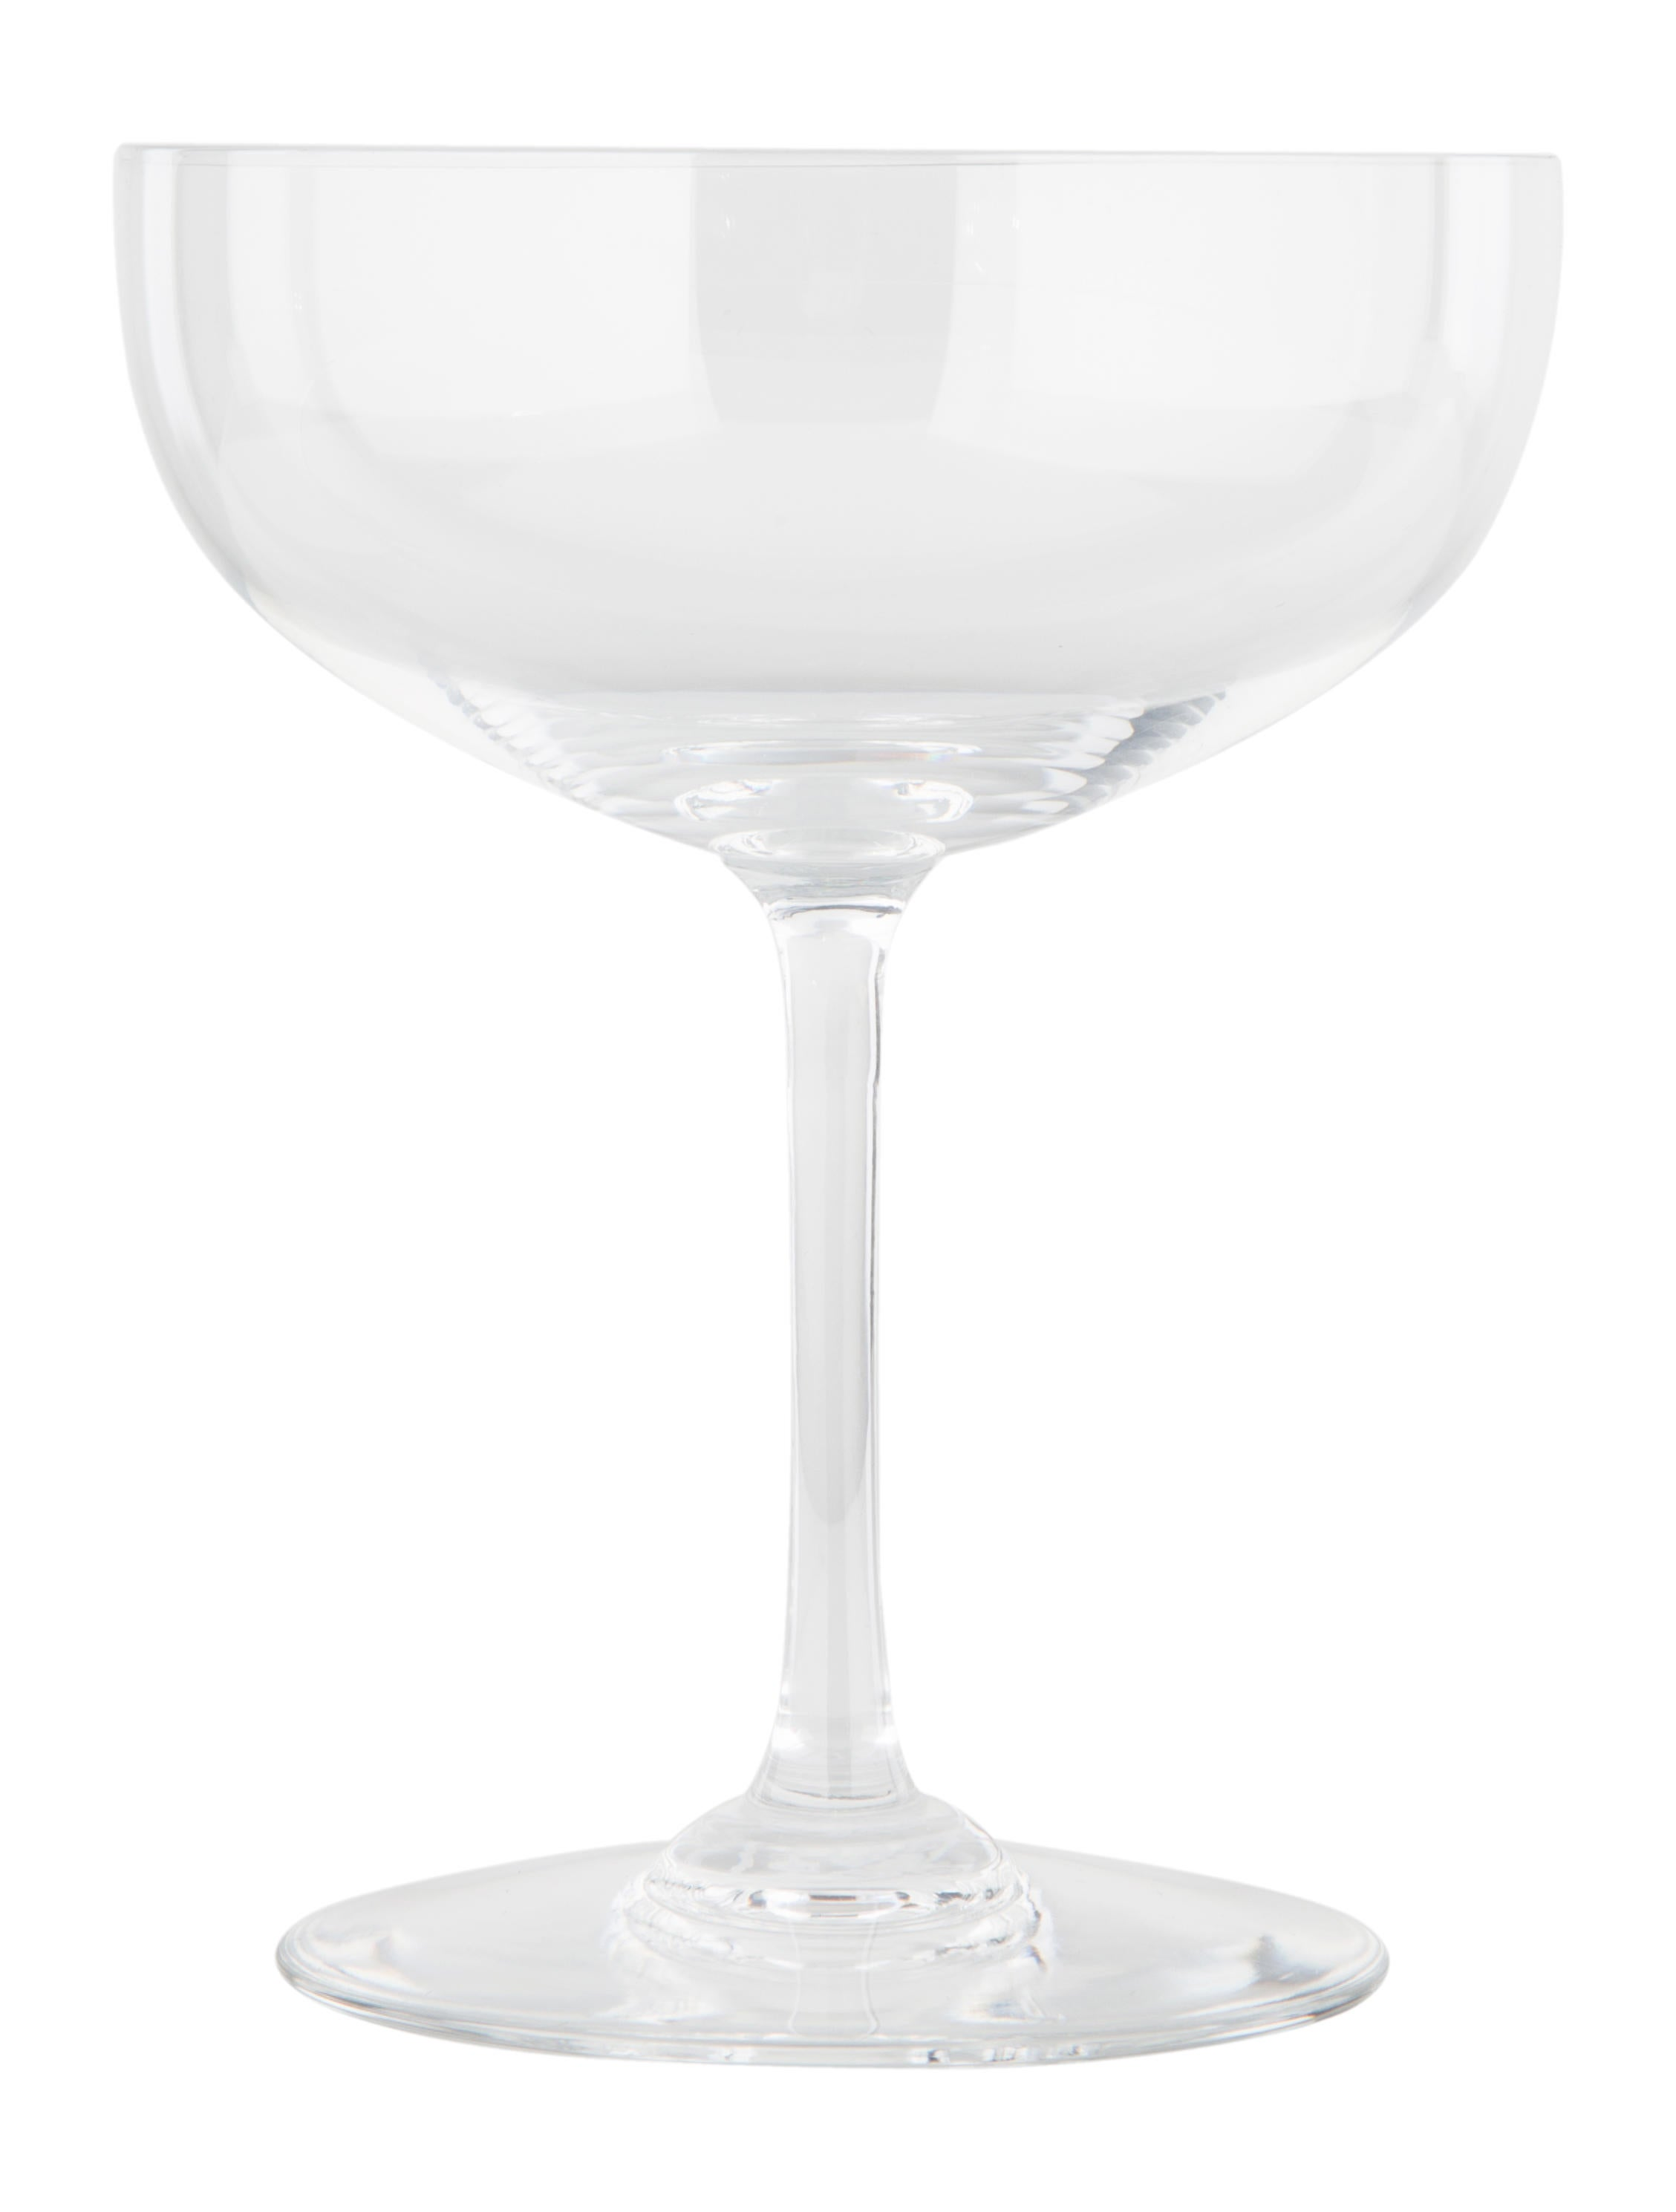 baccarat crystal champagne coupes tabletop and kitchen bcc22552 the realreal. Black Bedroom Furniture Sets. Home Design Ideas